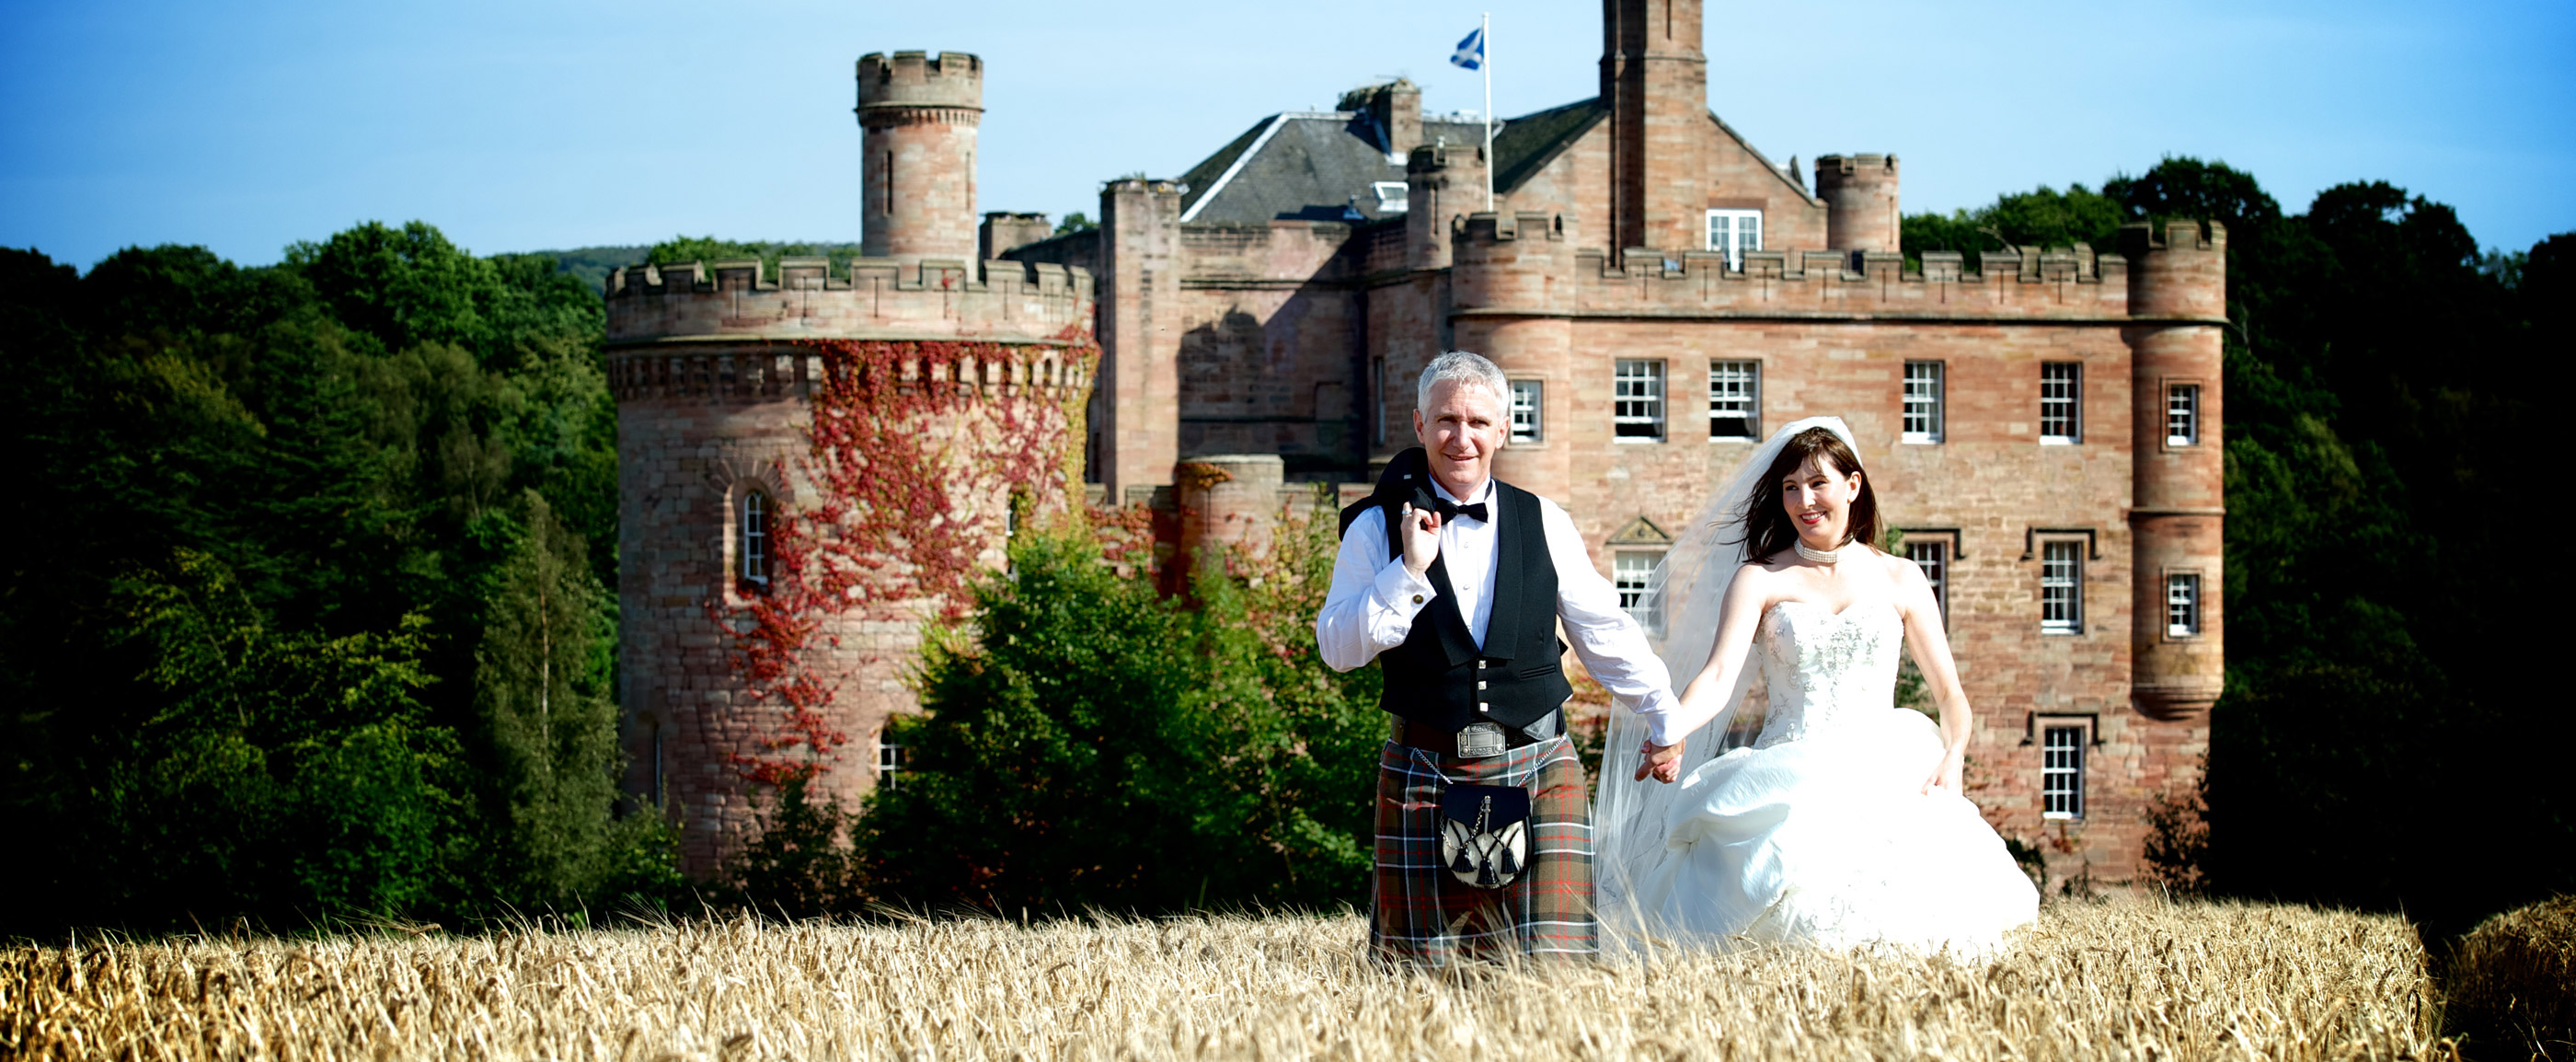 Photo of a bride and groom hand in hand on their wedding day, walking through a barley field with a Scottish castle in the background